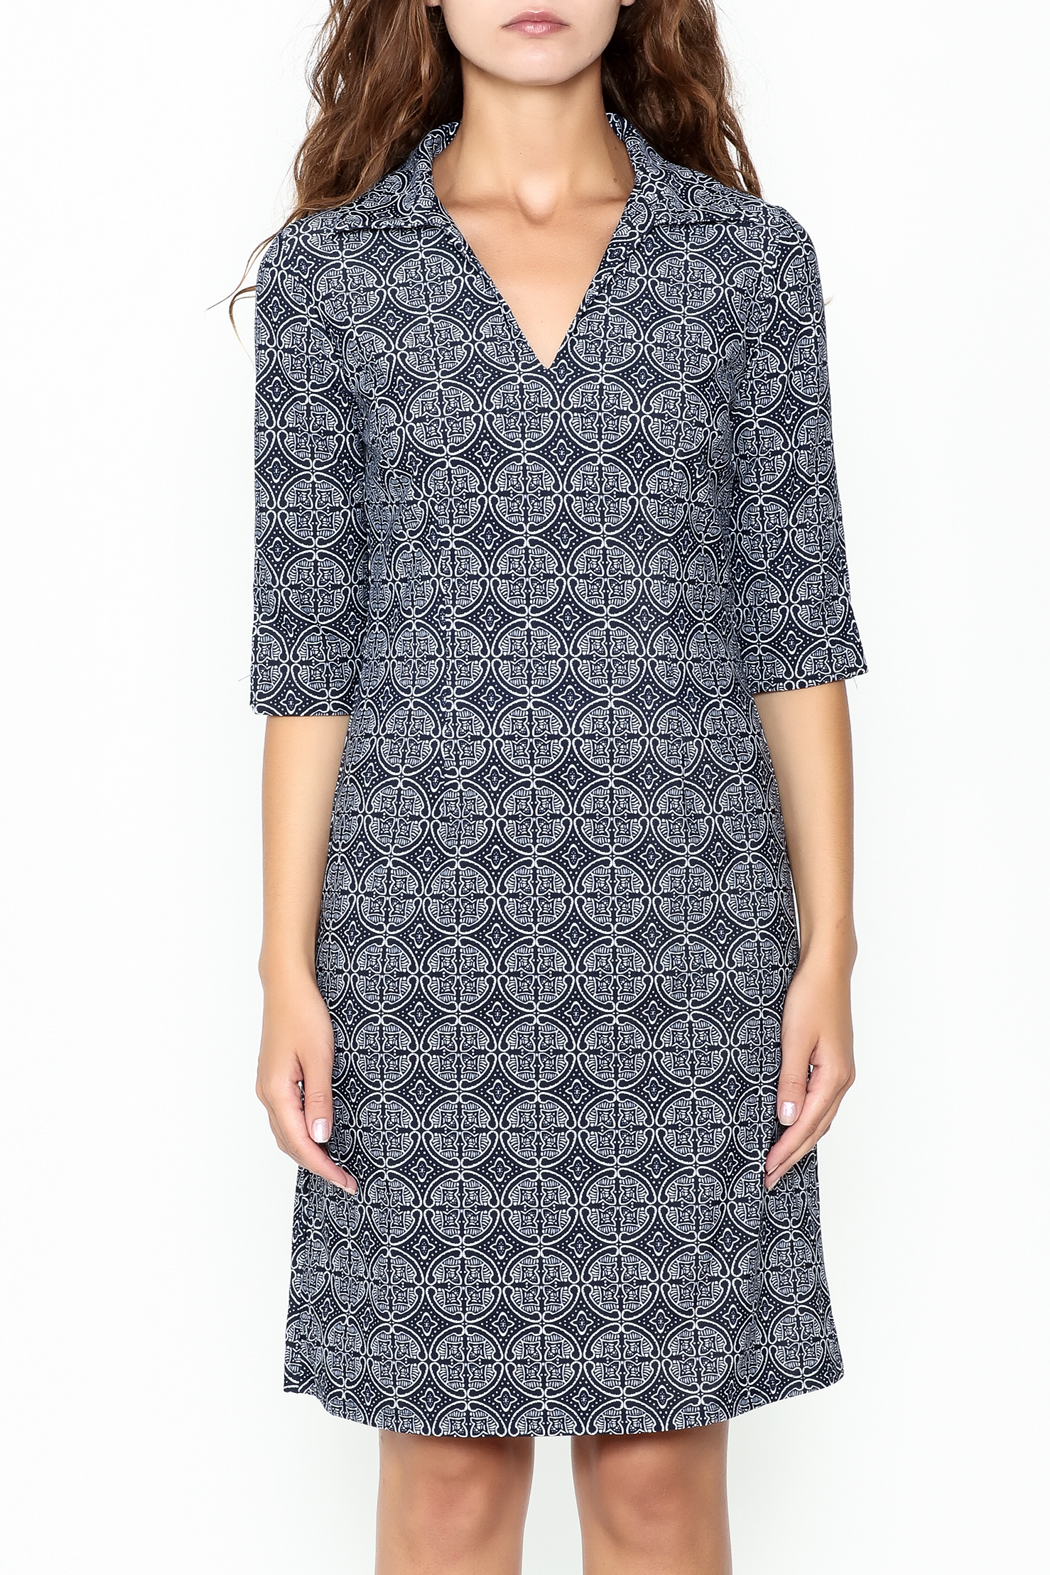 Jude Connally Megan Tunic Dress - Front Full Image